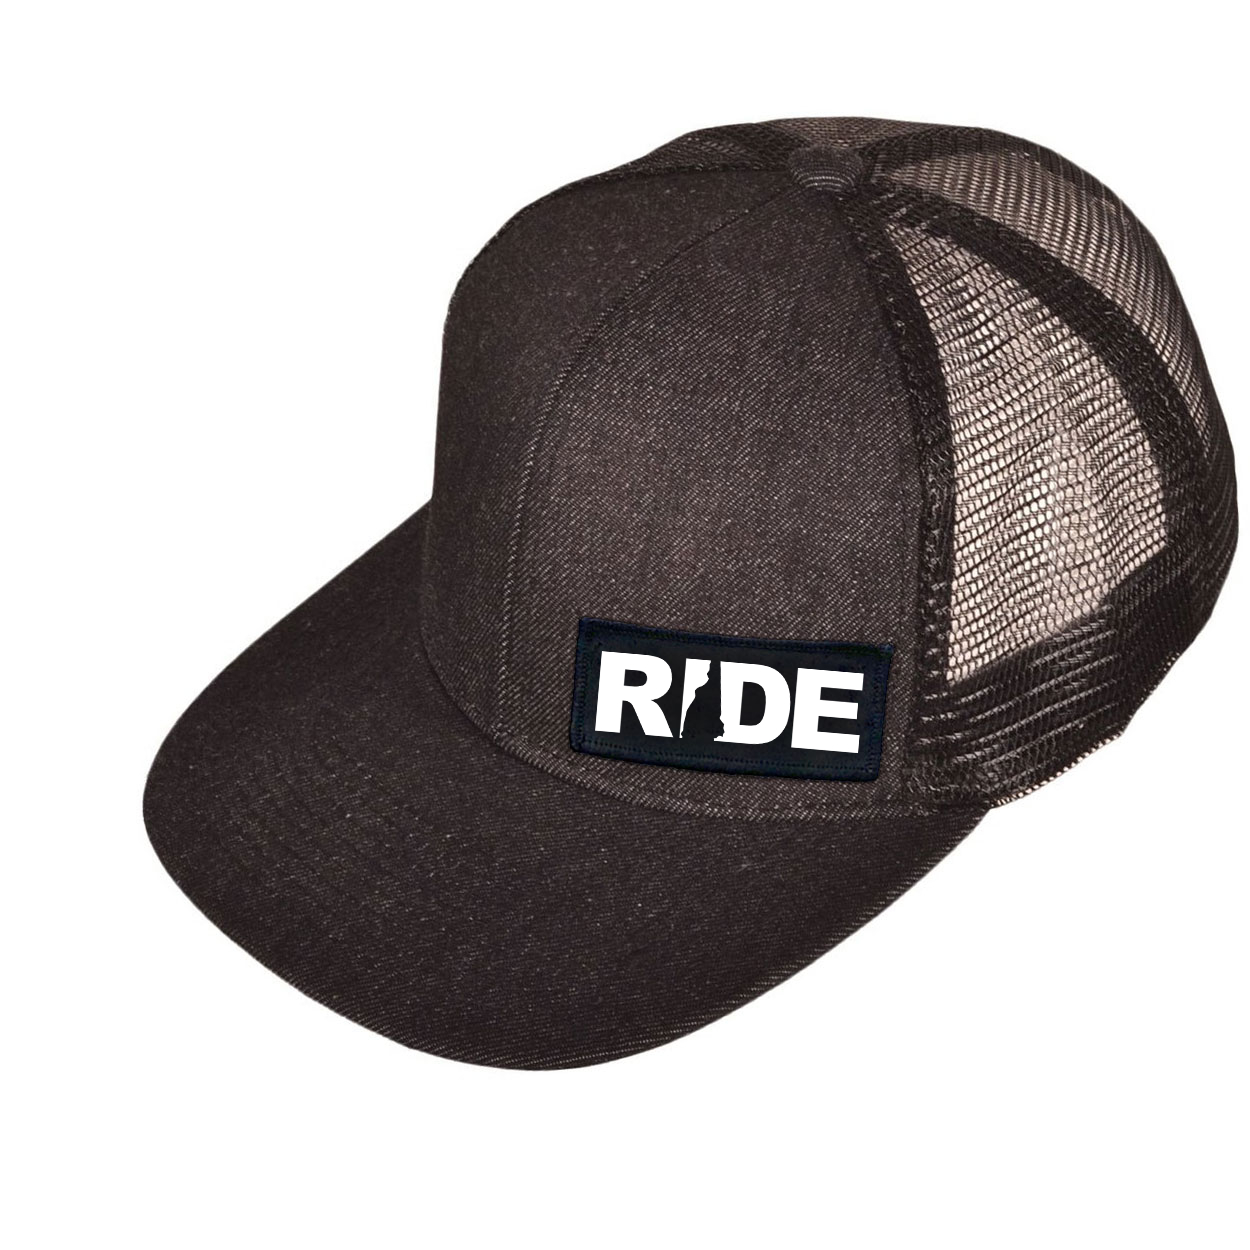 Ride New Hampshire Night Out Woven Patch Snapback Flat Brim Hat Black Denim (White Logo)